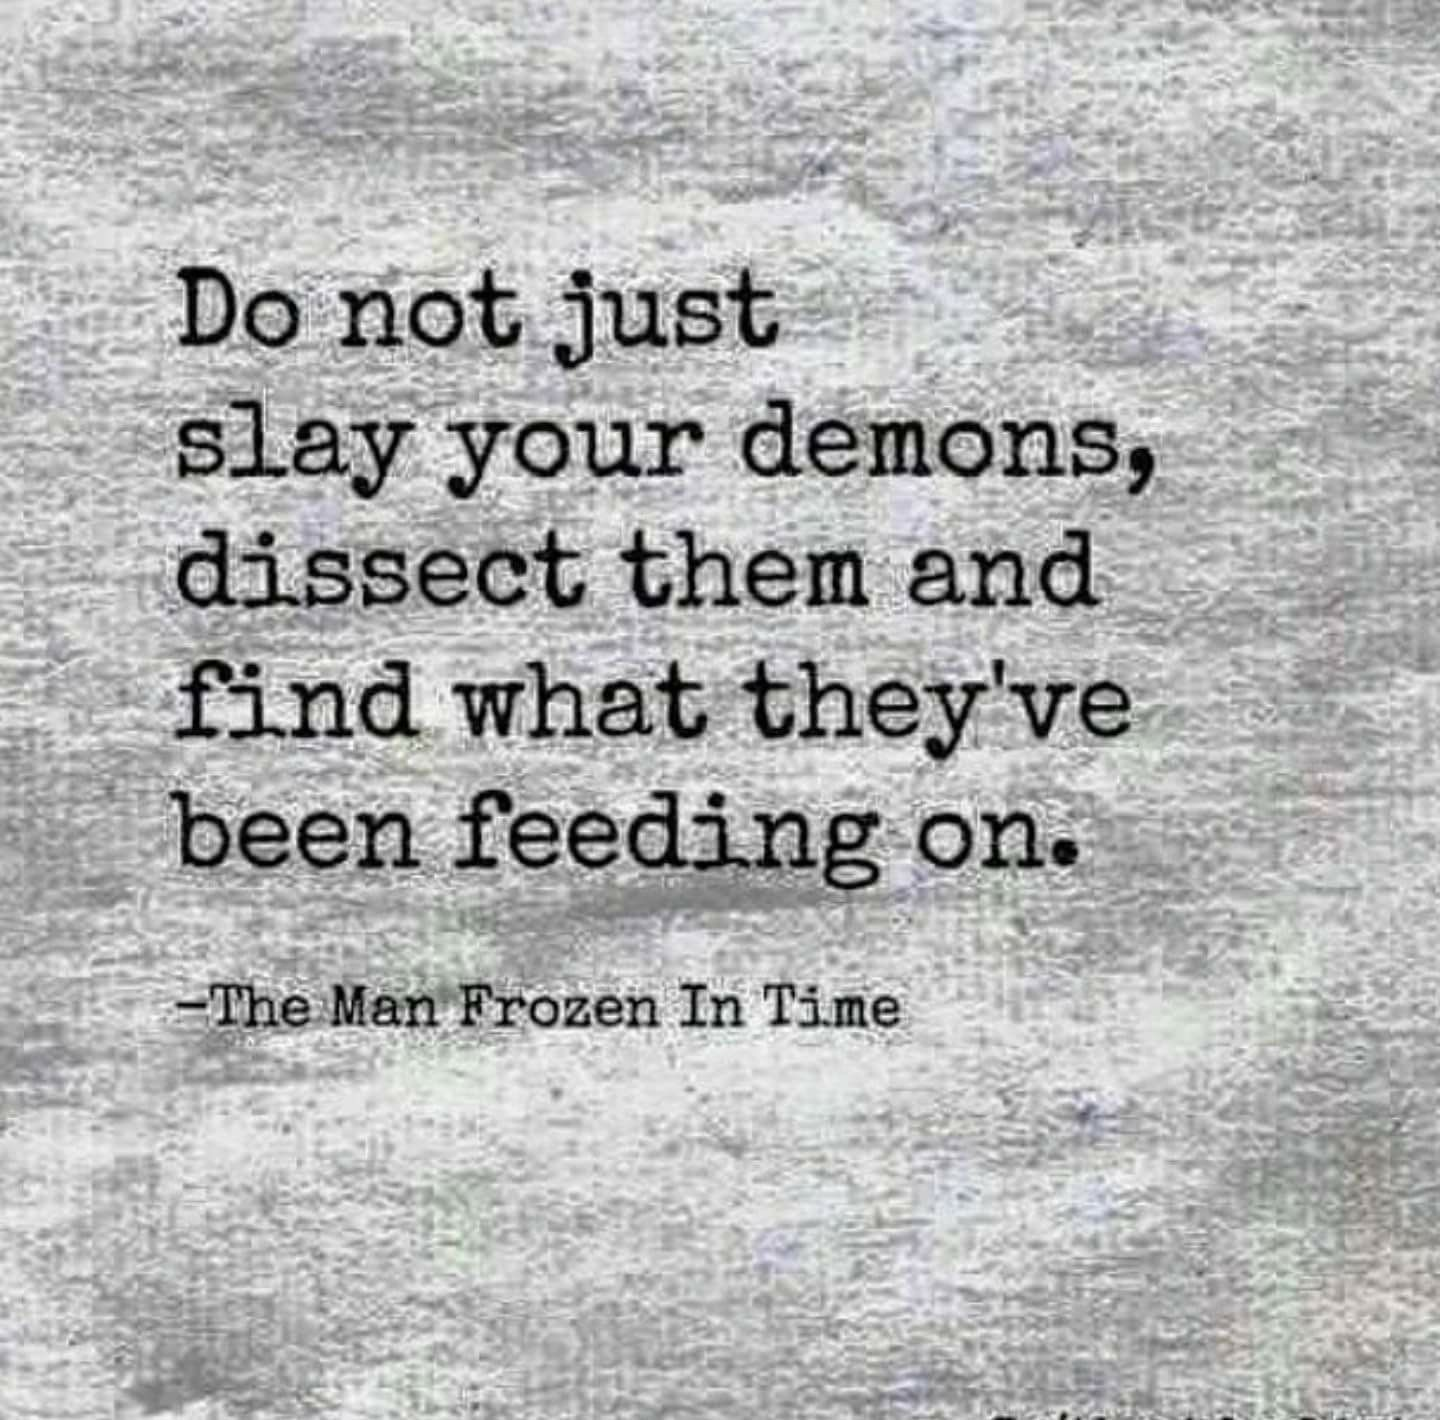 """Do not just slay your demons; dissect them and find what they've been feeding on."" – The Man Frozen In Time [1440×1420]"